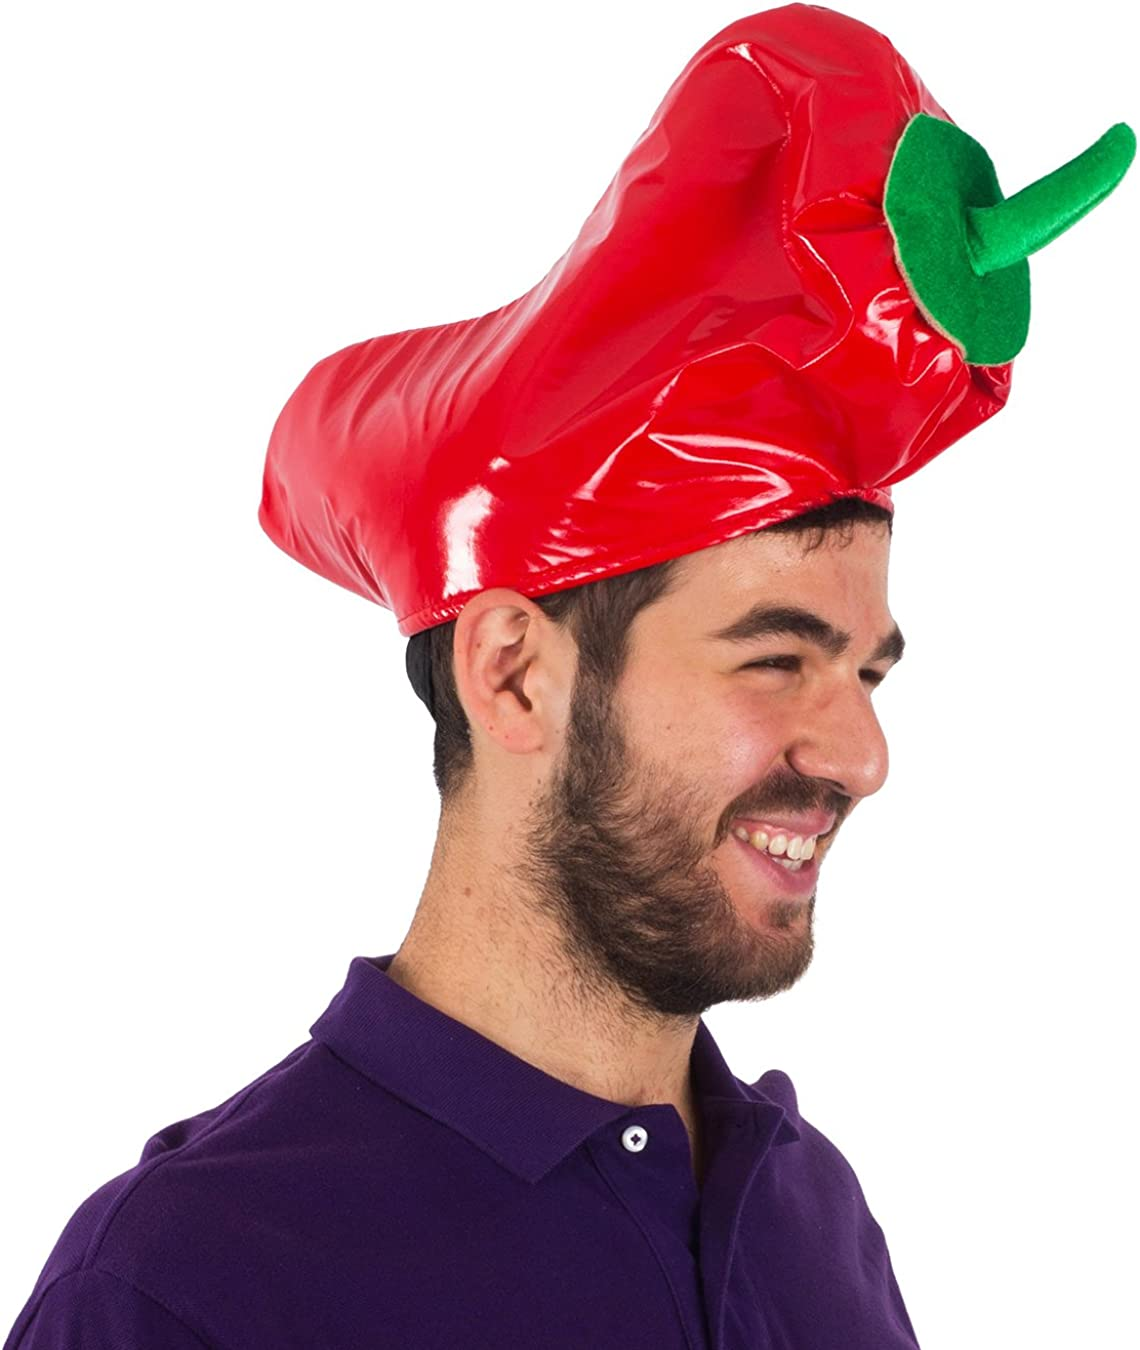 Red Chili Pepper Hat Adult Costume Accessory NEW